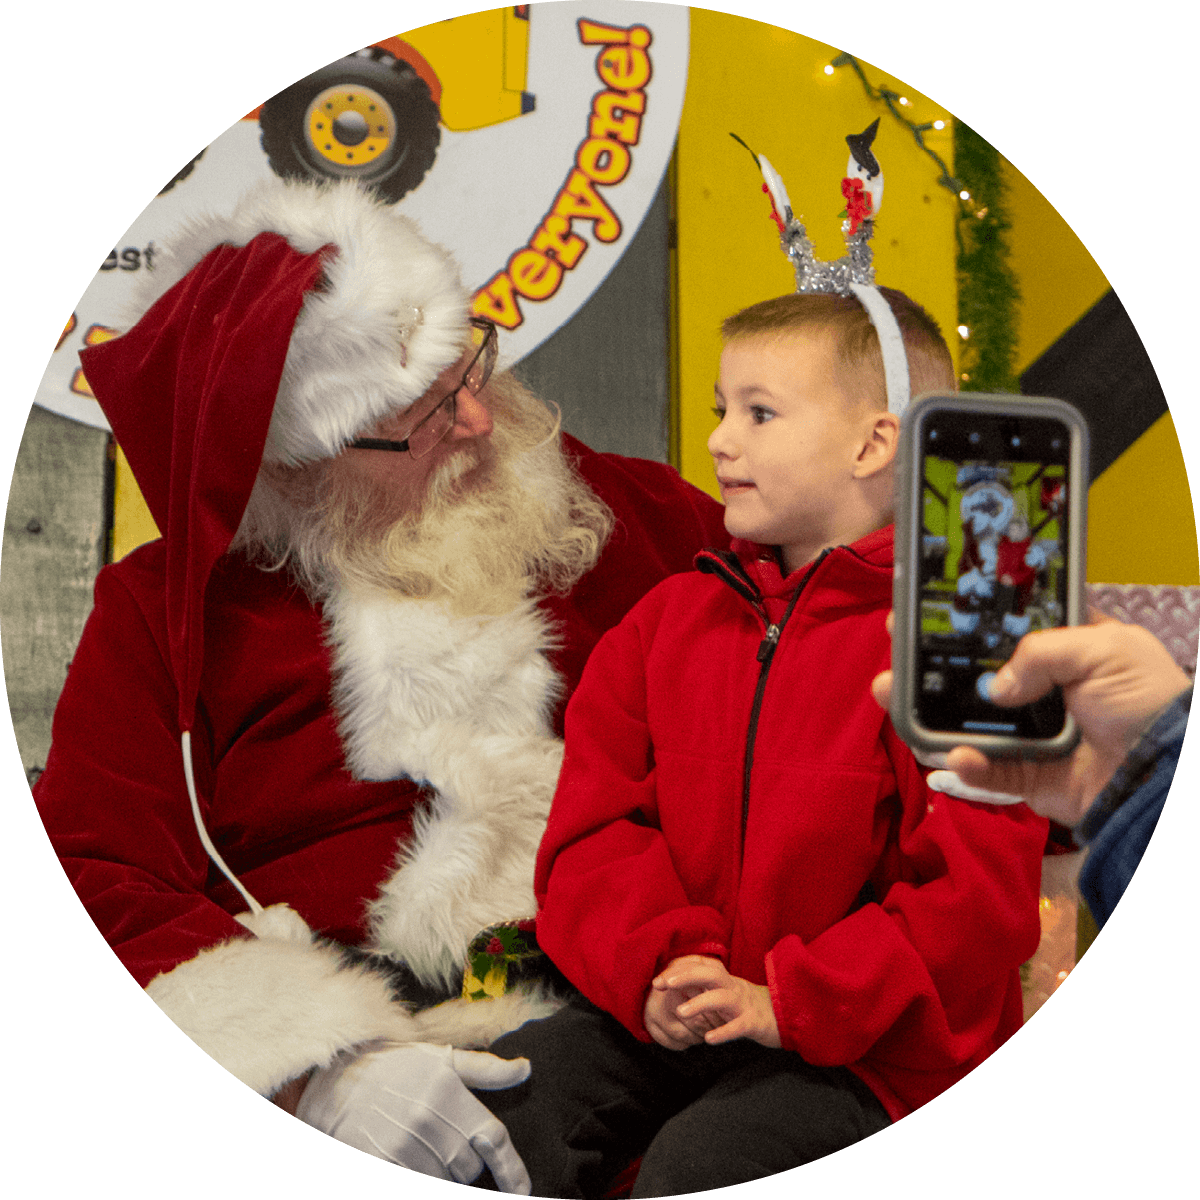 Child on Santa's lap telling him what he wants for Christmas while Dad takes photo.